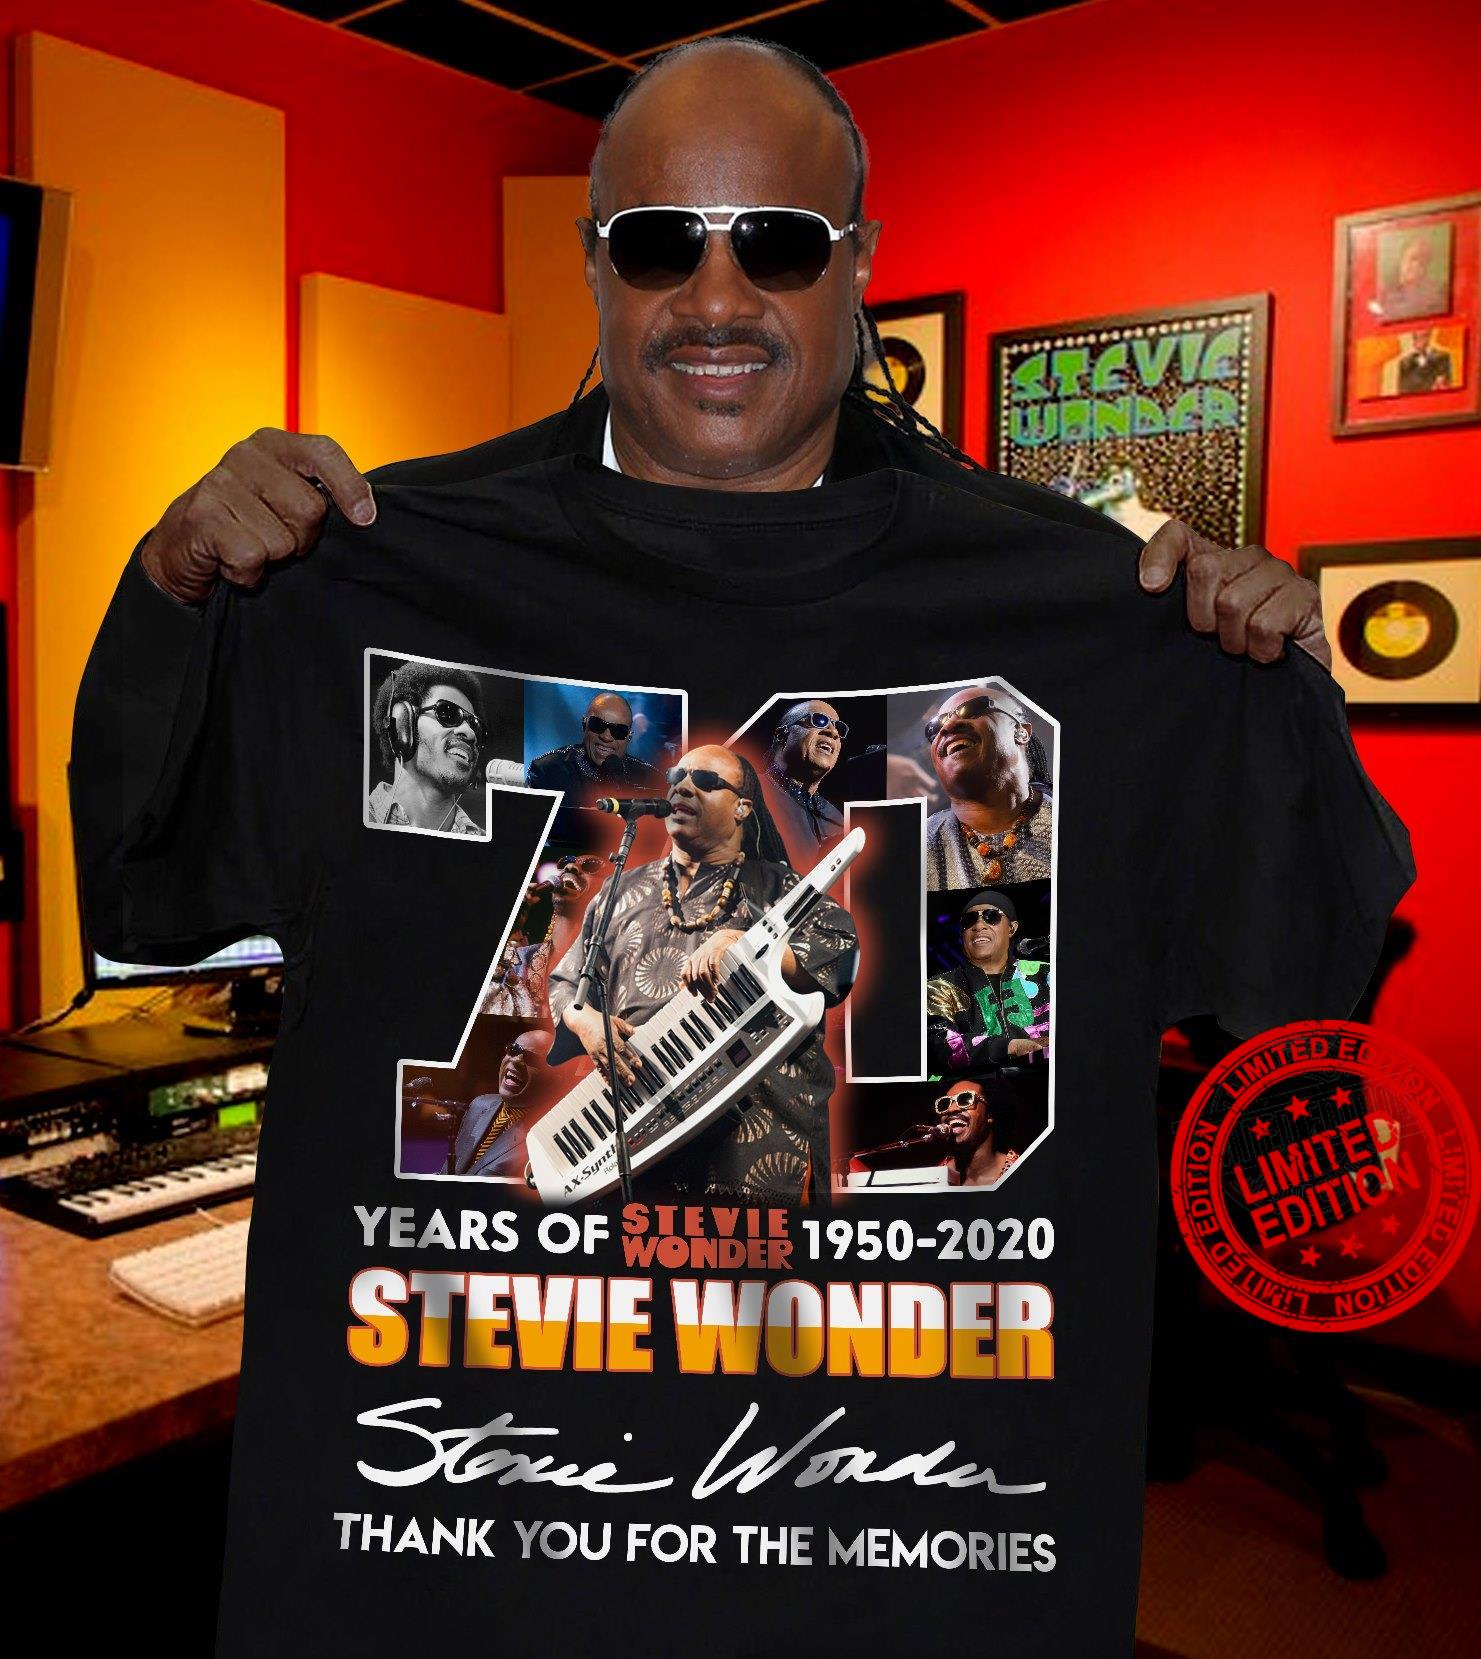 70 Years Of Stevie Wonder 1950-2020 Thank You For The Memories Shirt